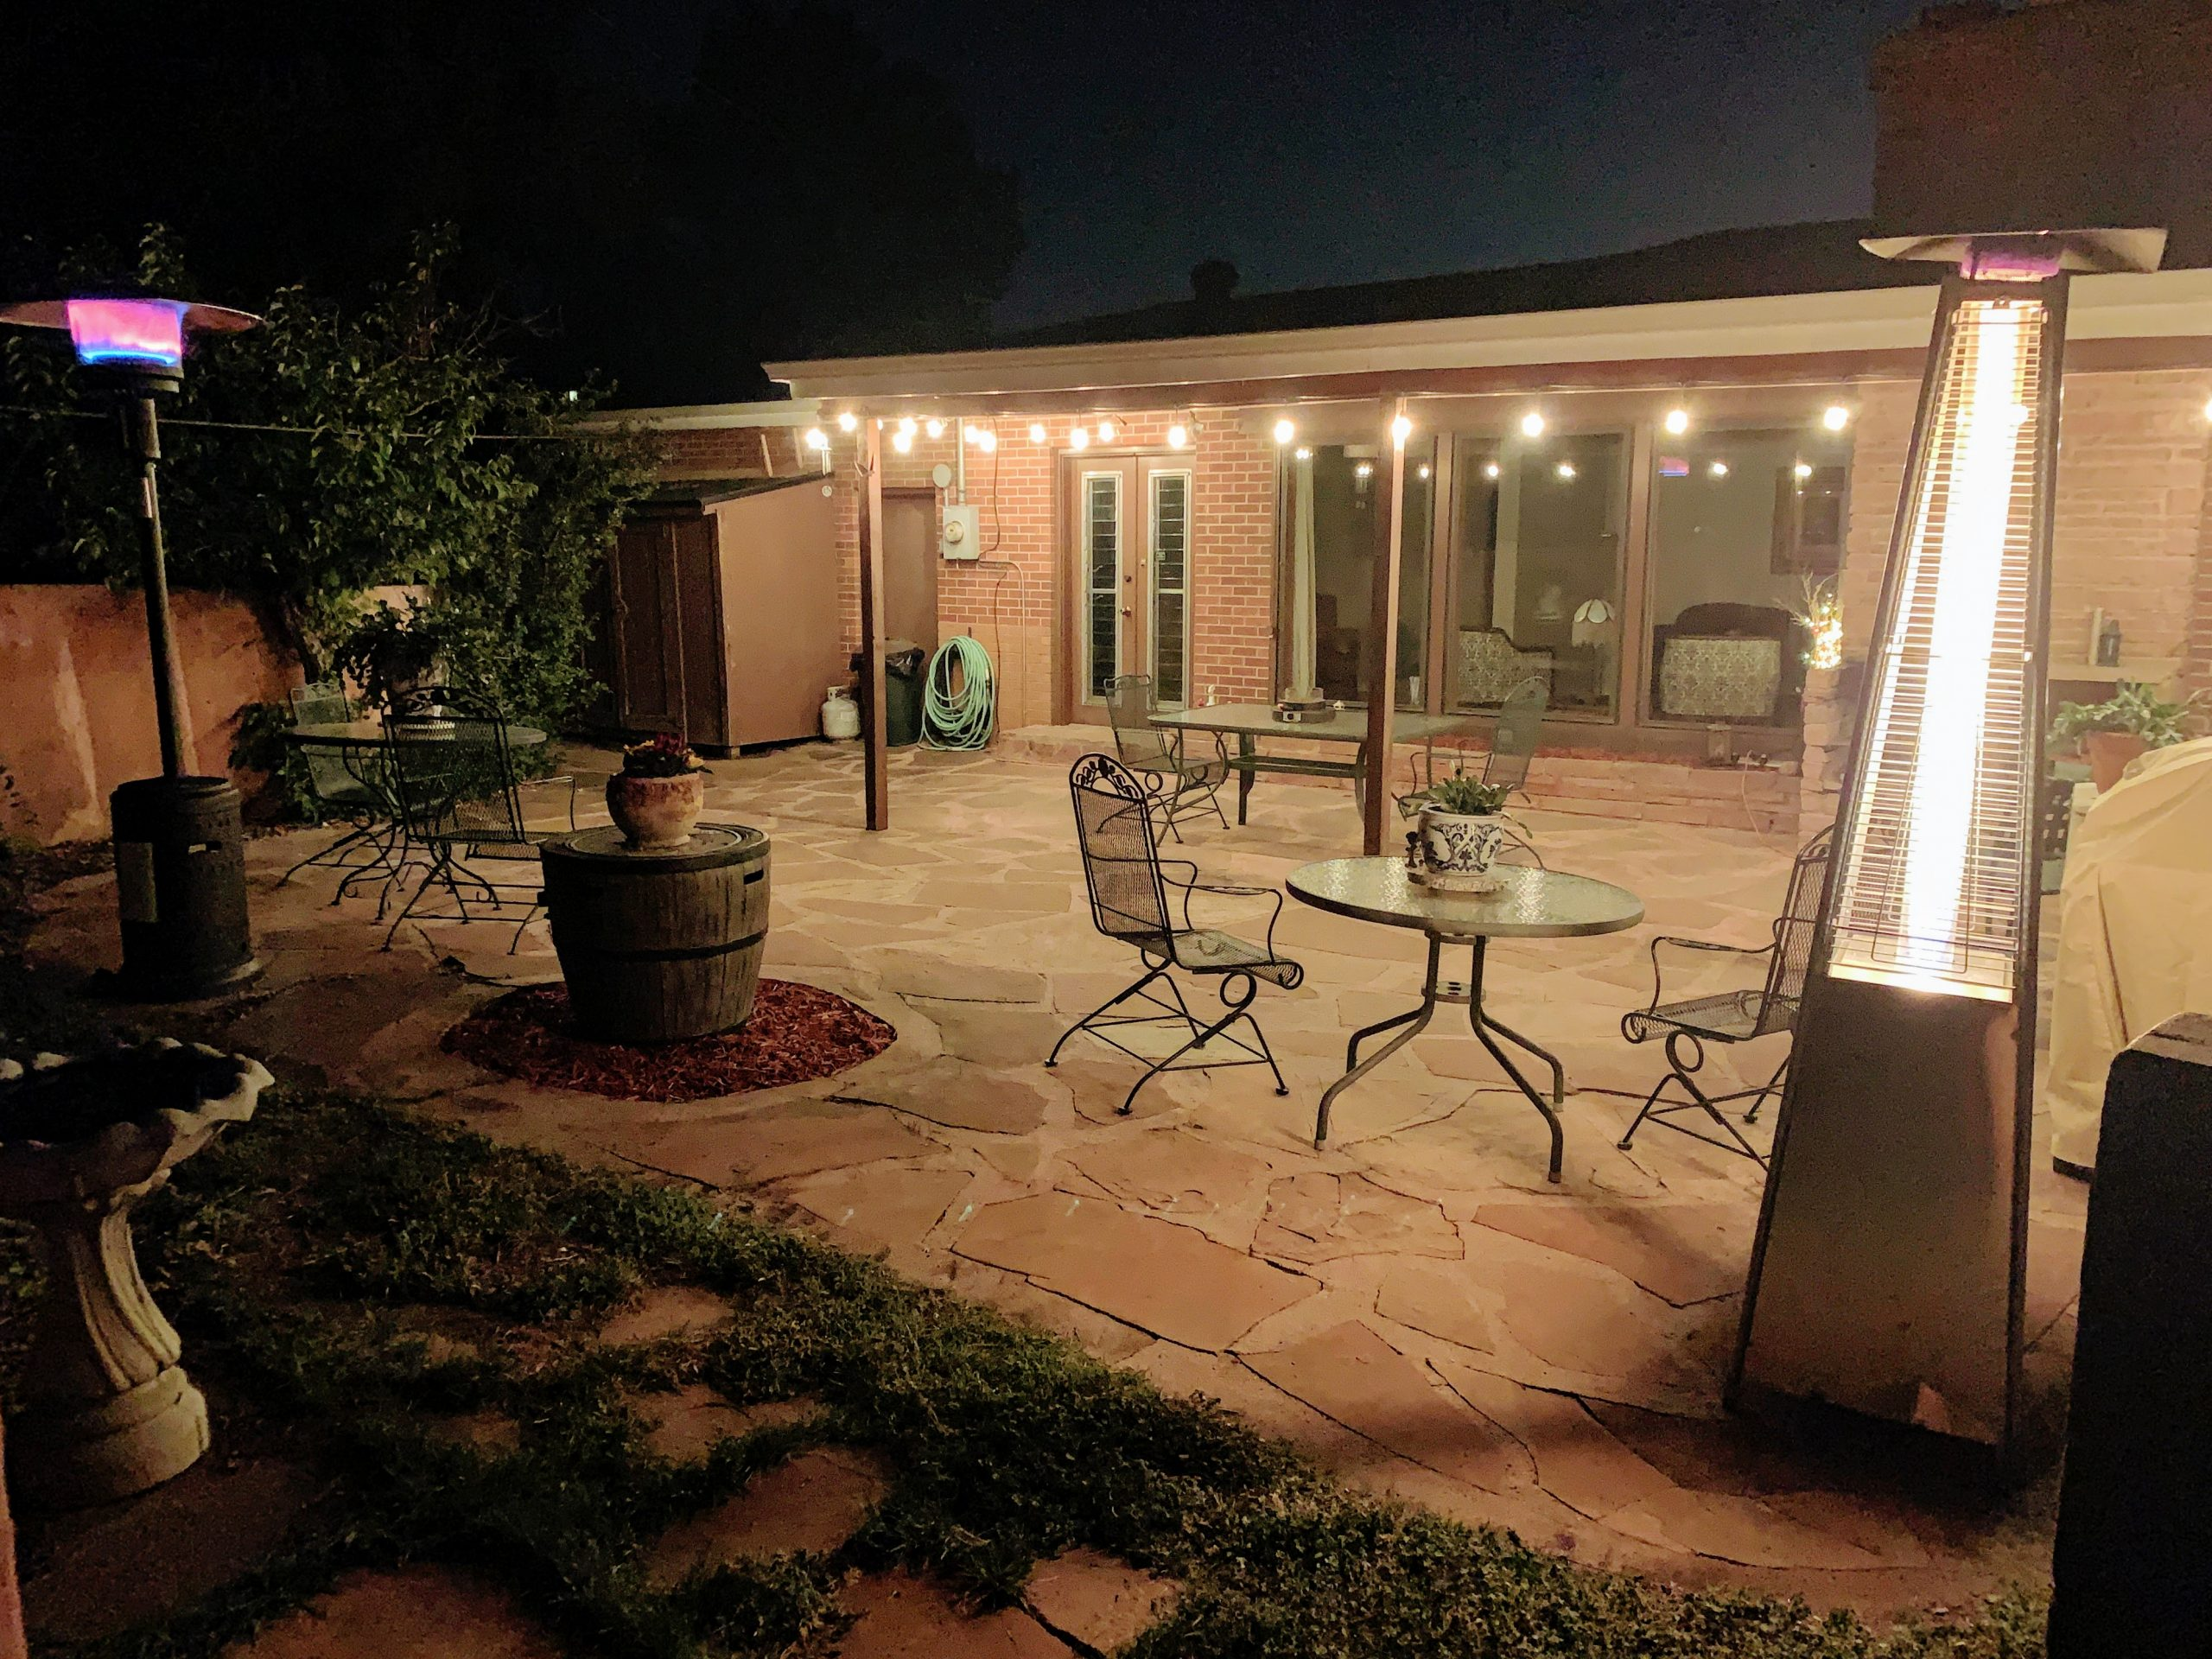 Two heaters burning on patio at nighttime